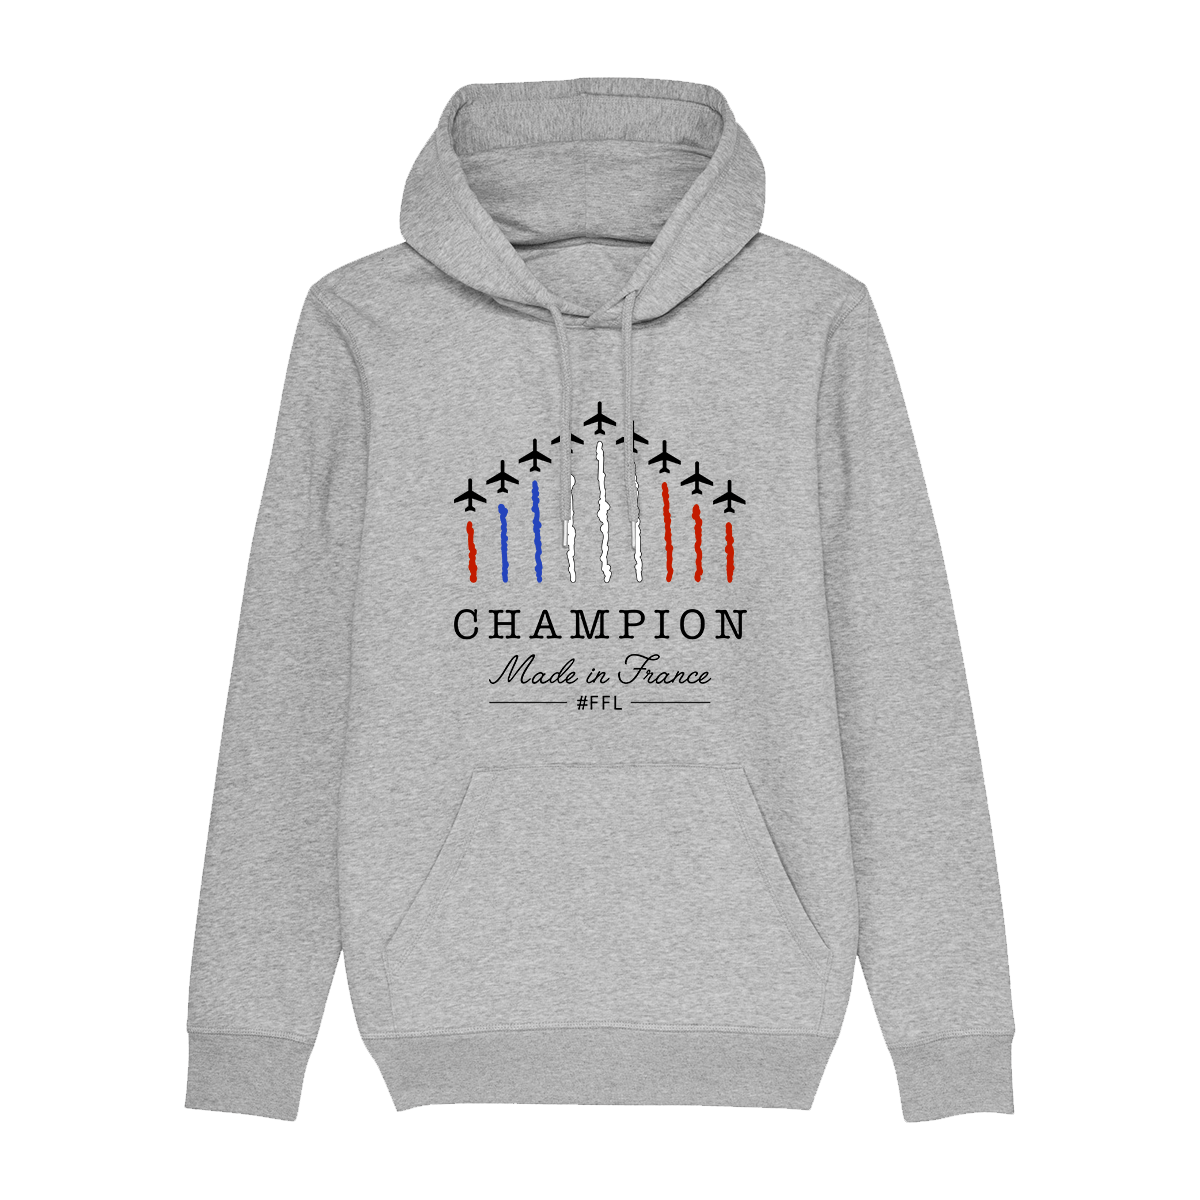 Hoodie FFL Champions made in France